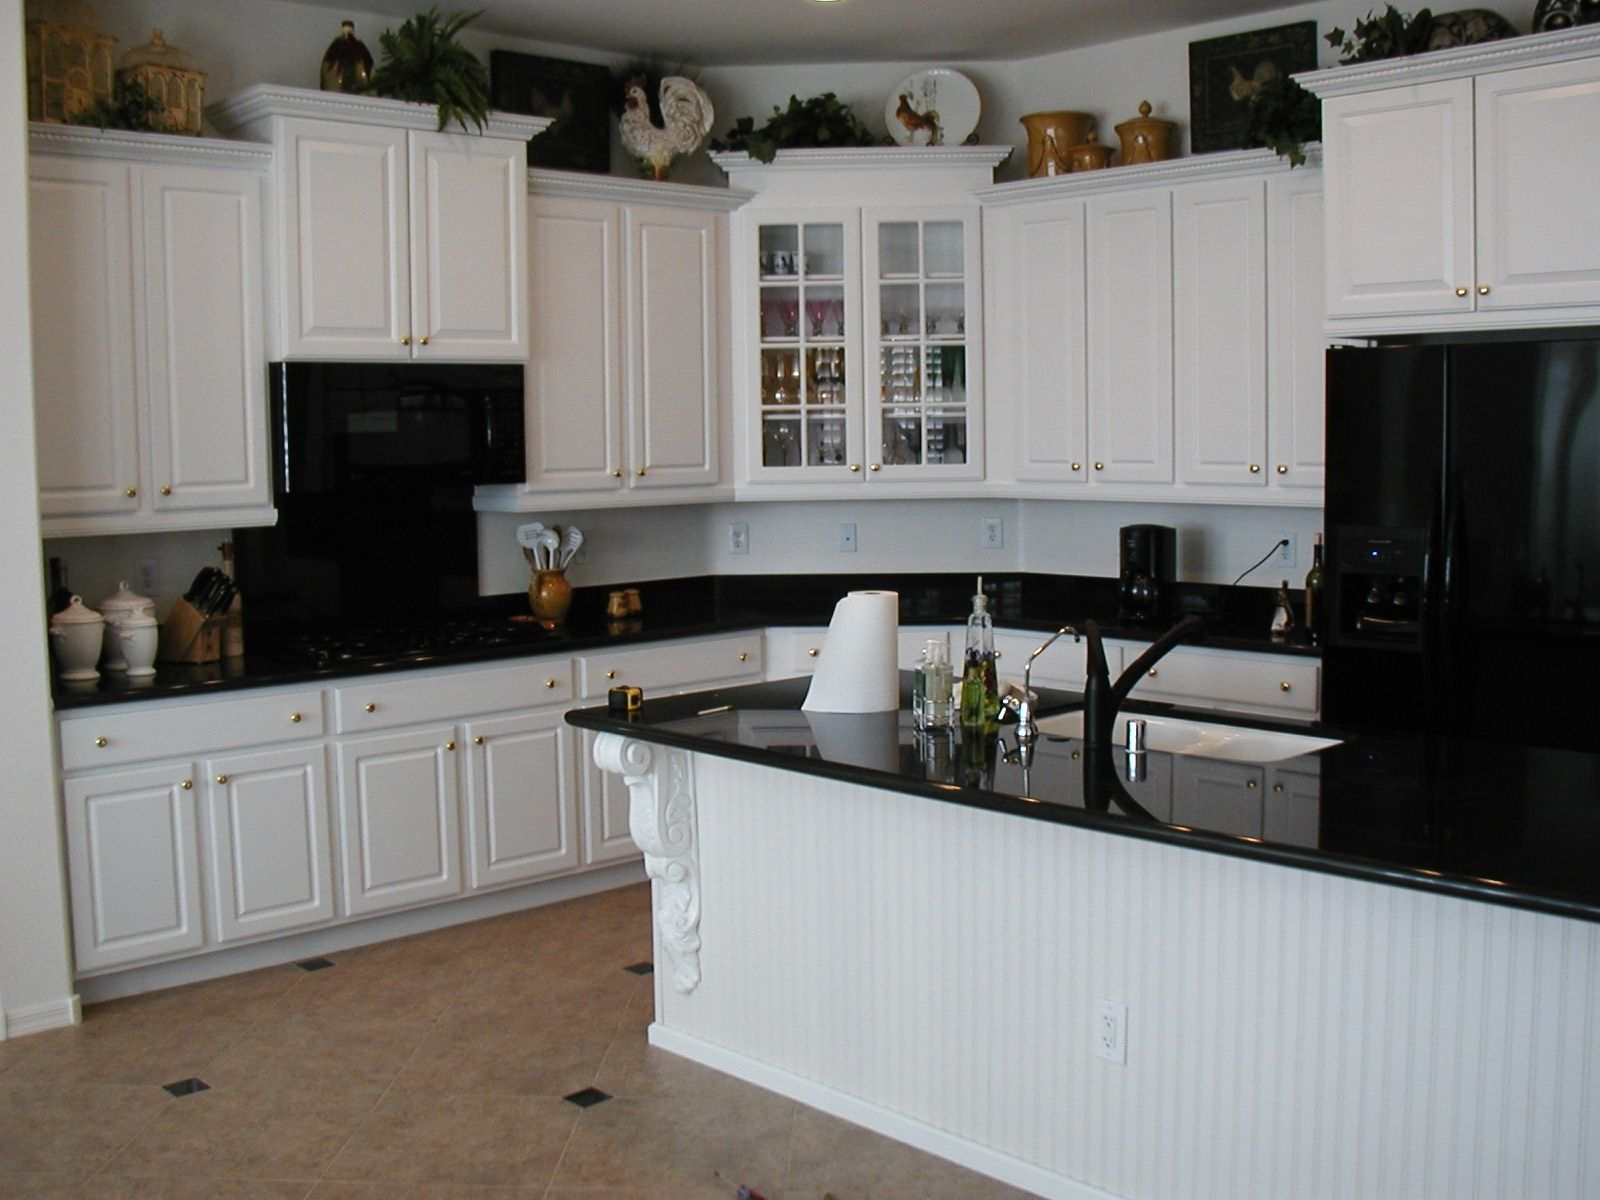 Best Images About Kitchens With Black Appliances On Pinterest - Kitchen designs with black appliances